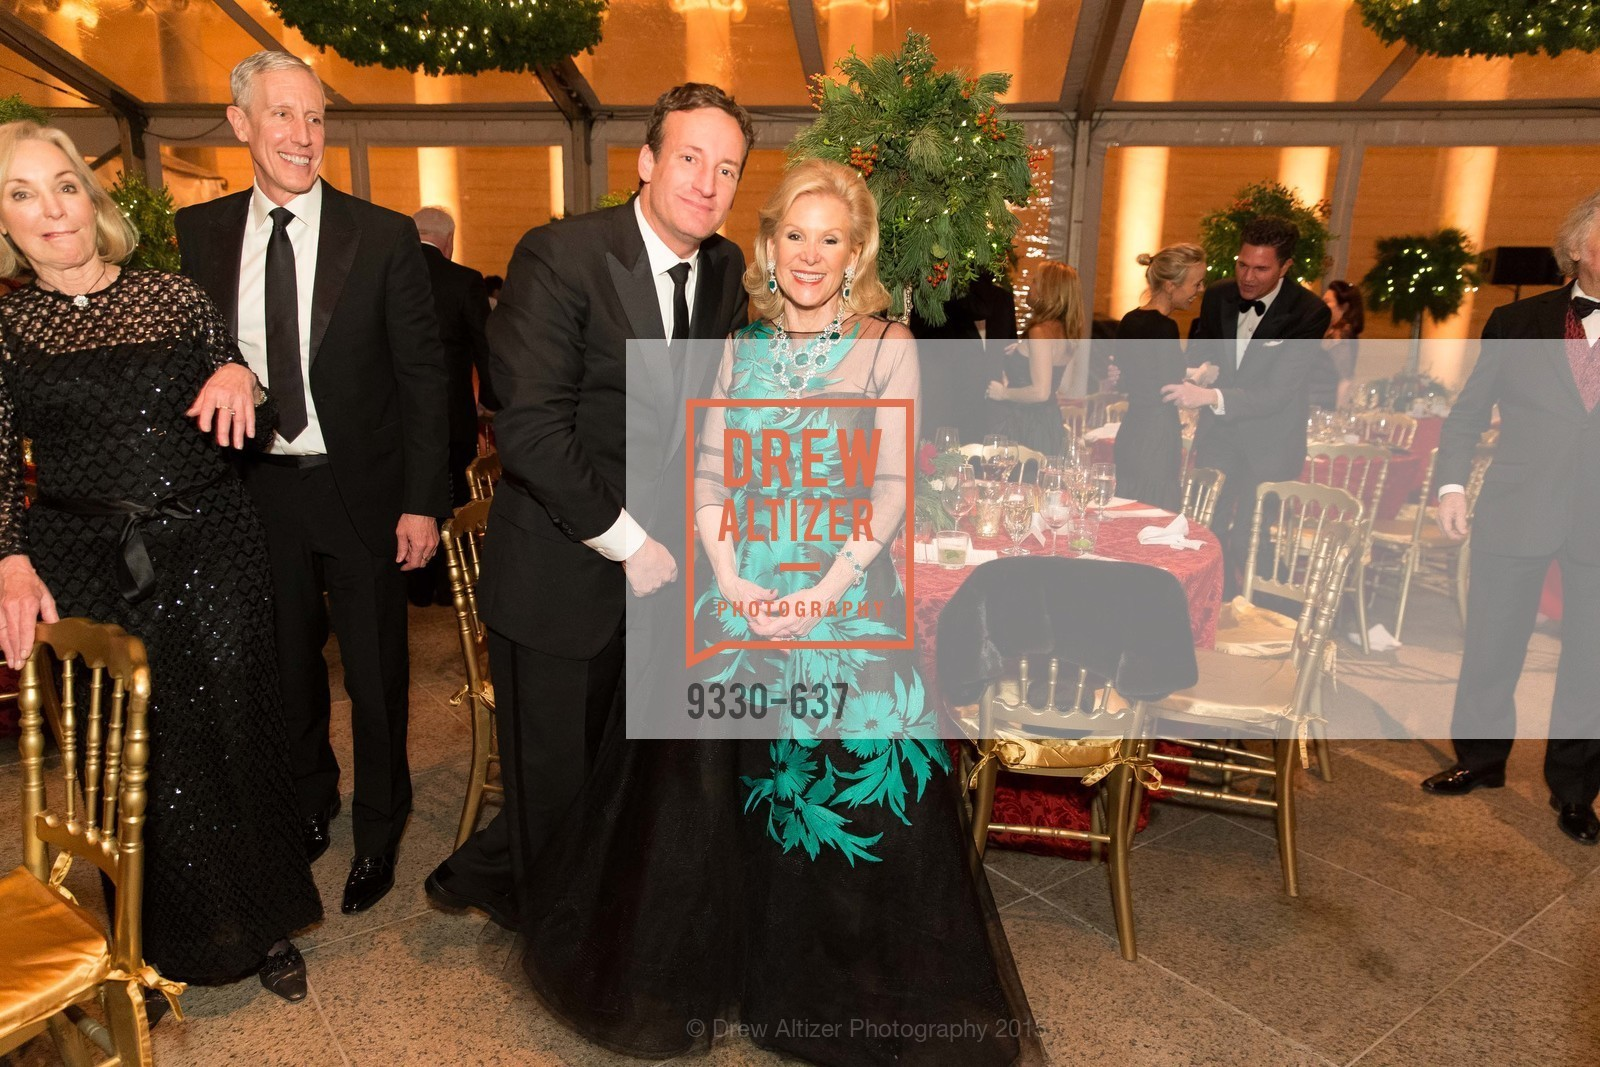 Todd Traina, Dede Wilsey, AN ELEGANT EVENING Presented by the Fine Arts Museums of San Francisco, Legion of Honor, Court of Honor. 100 34th Ave, December 8th, 2015,Drew Altizer, Drew Altizer Photography, full-service agency, private events, San Francisco photographer, photographer california